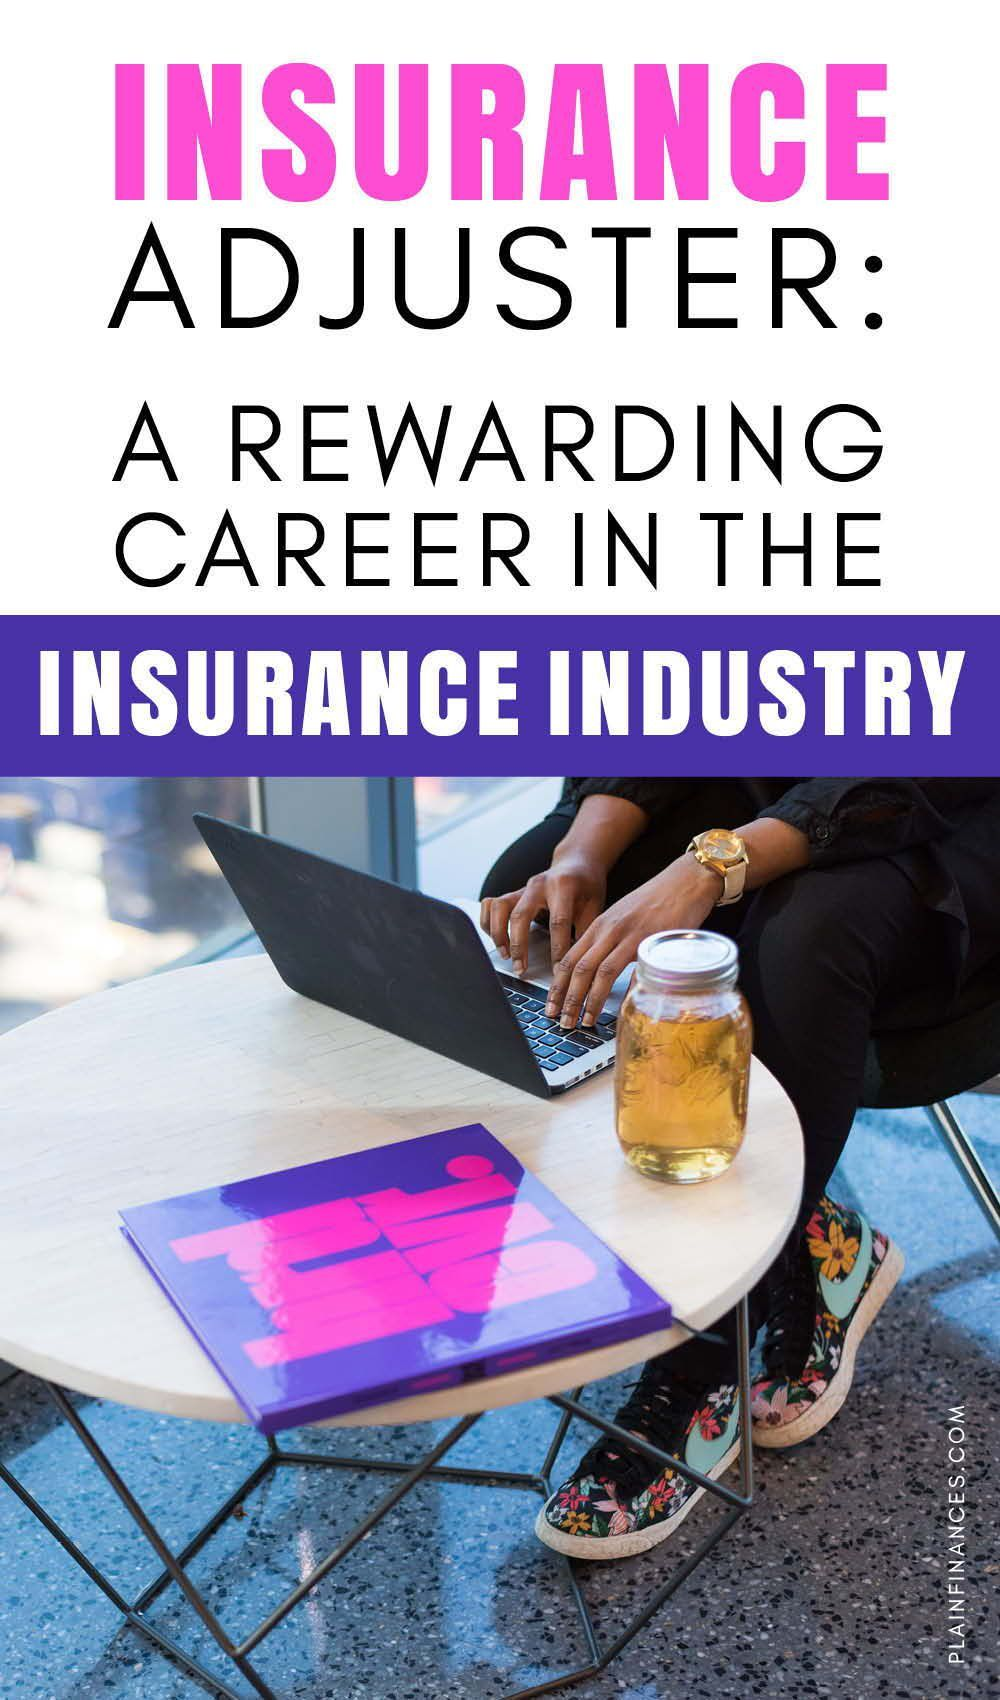 Insurance Adjuster A Rewarding Career In The Insurance Industry Jobs And Careers Business Insurance Finance Jobs Moving Insurance